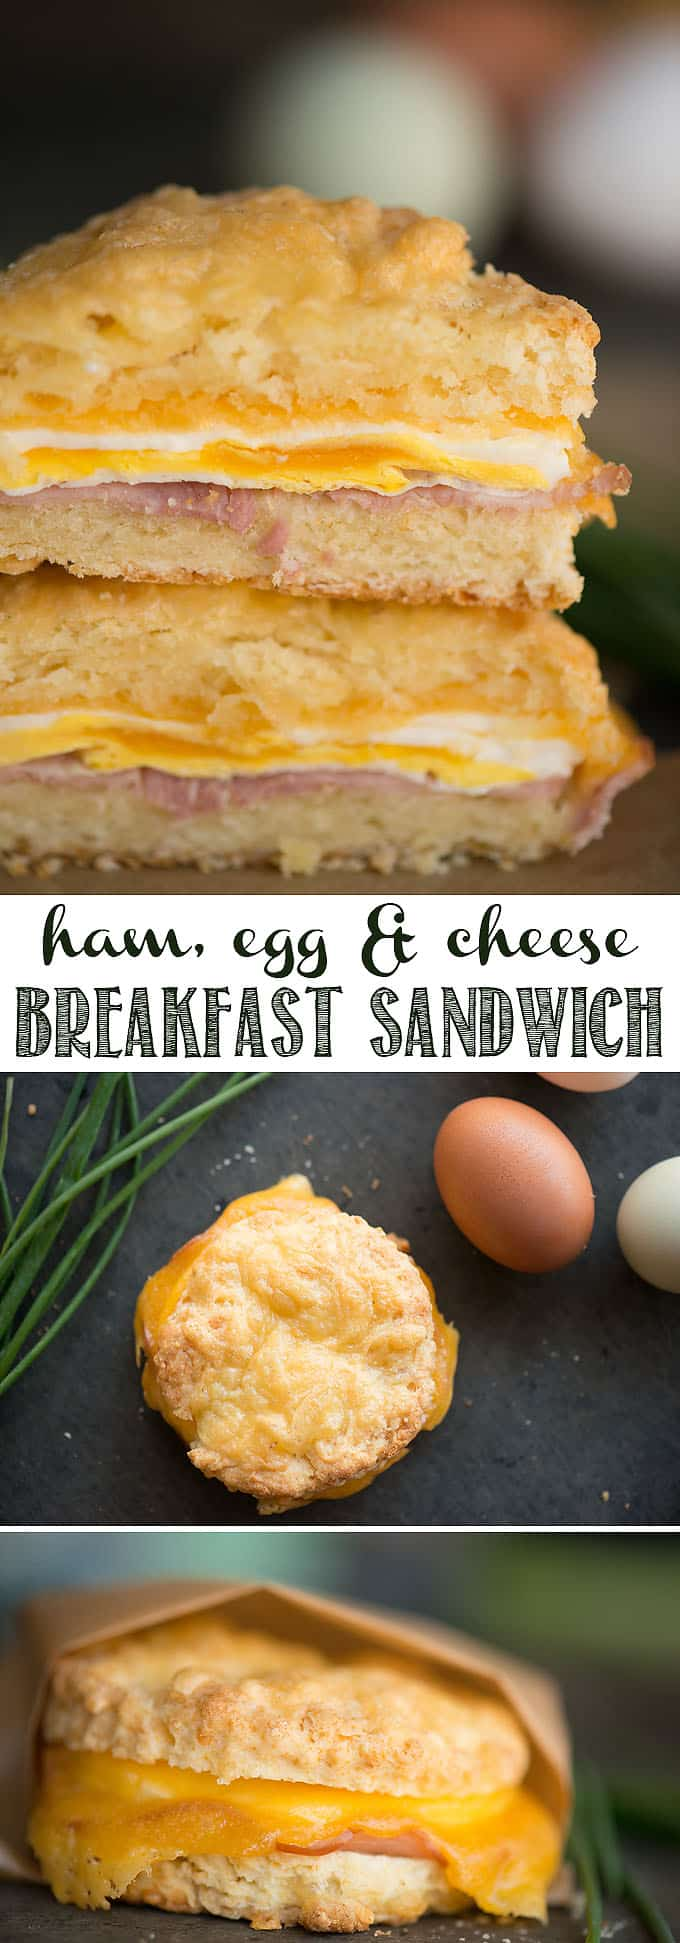 Ham, Egg & Cheese Breakfast Sandwiches combine a perfectly cooked egg, melted cheddar cheese, flavorful ham inside a freshly baked homemade cheddar biscuit. Make them as a grab-and-go breakfast as a delcious way to start your day! #breakfast #breakfastsandwich #biscuit #cheddarbiscuit #egg #cheddar #ham #breakfastslider